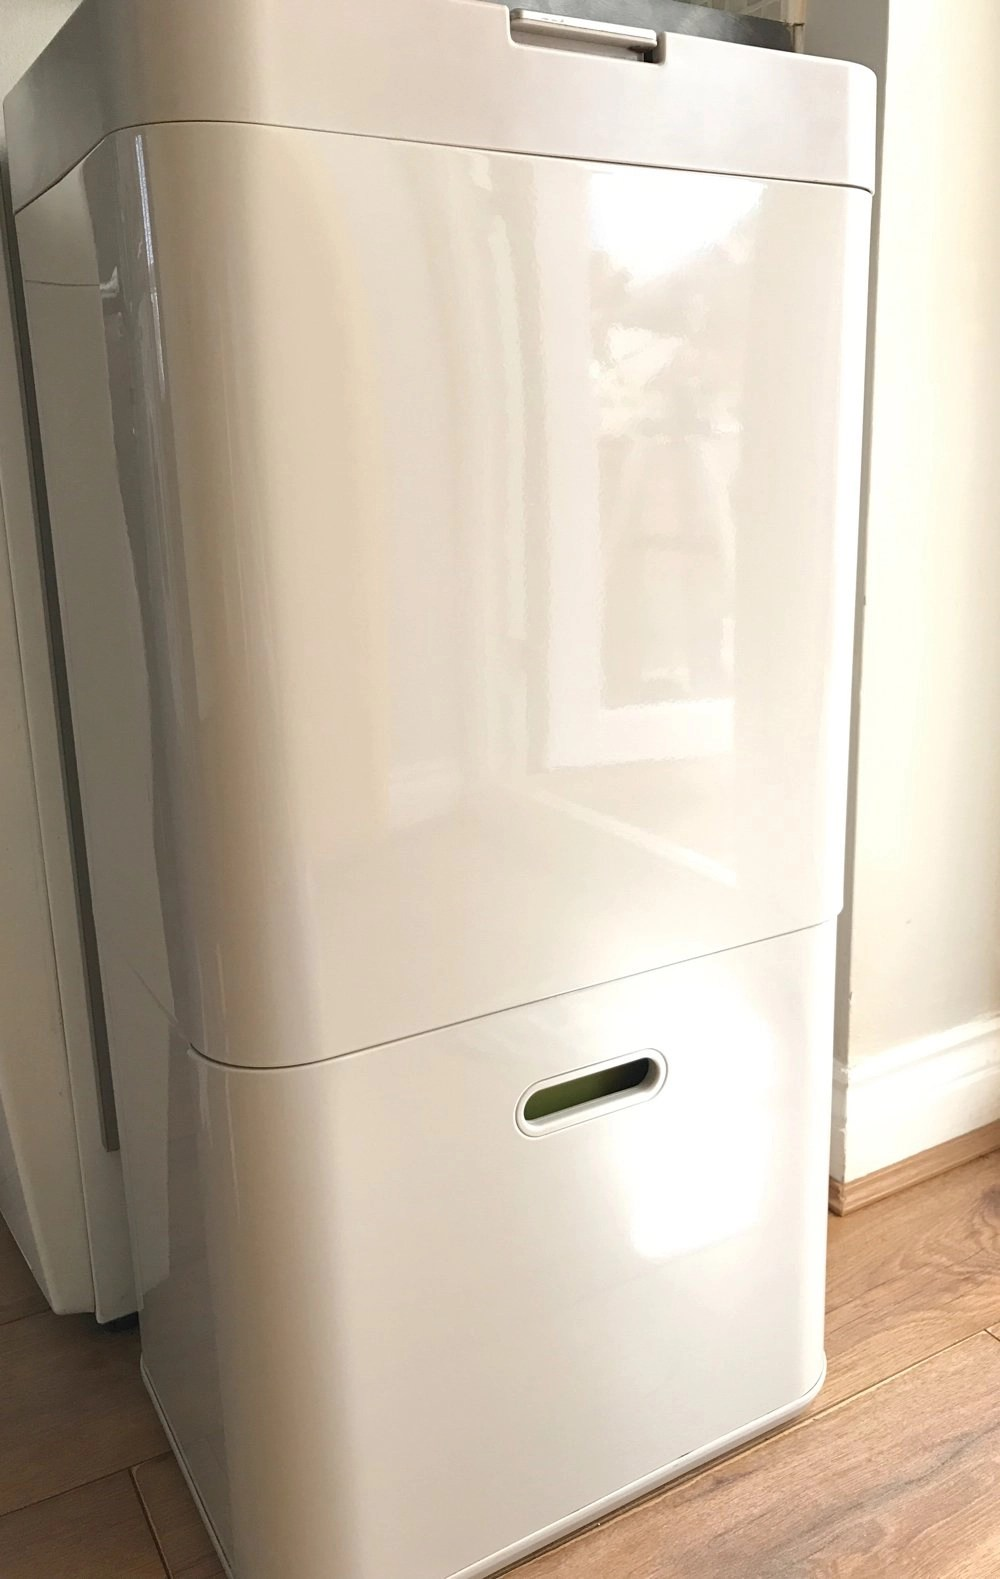 Joseph Joseph Intelligent Waste Bin Review | Daisies & Pie